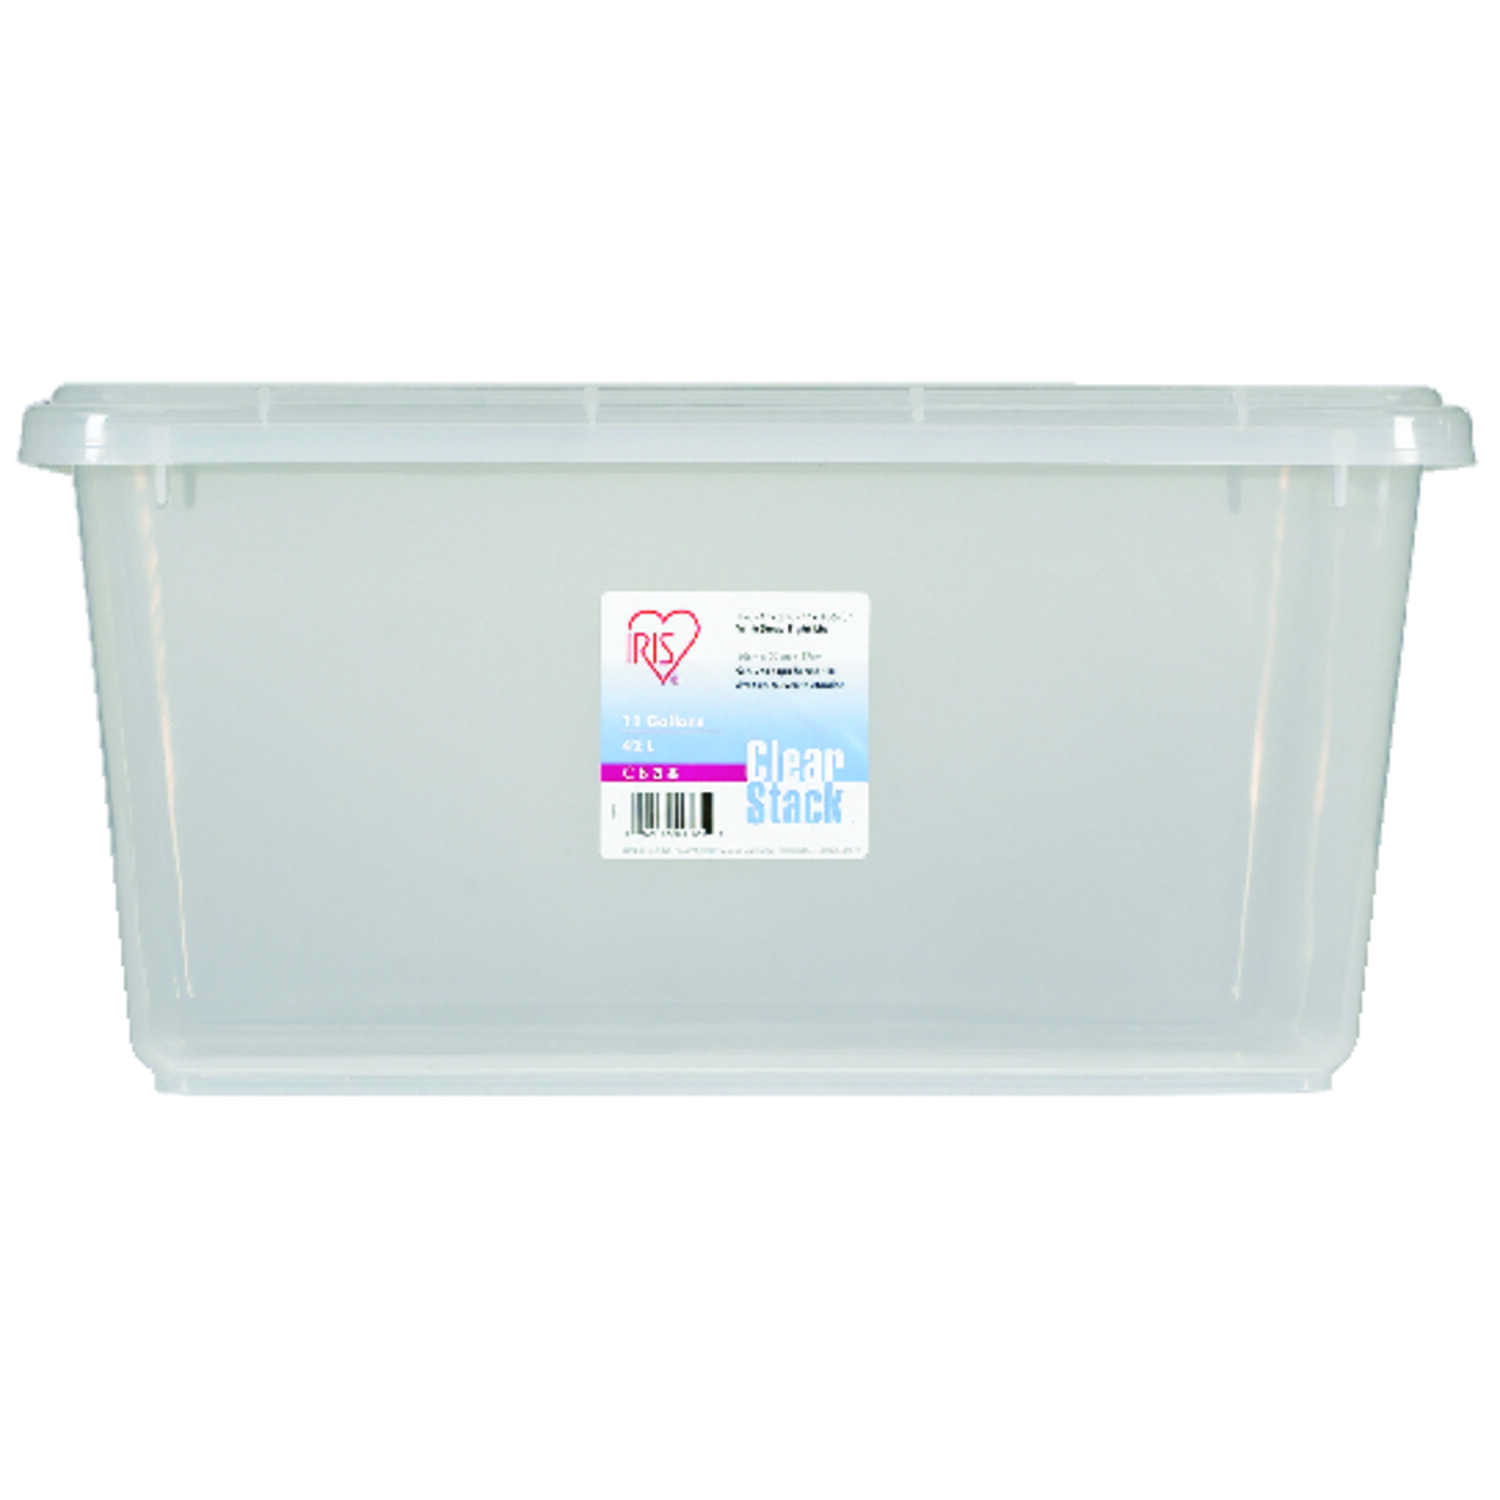 Iris  10.6 in. H x 21.75 in. D x 15.7 in. W Stackable Storage Box